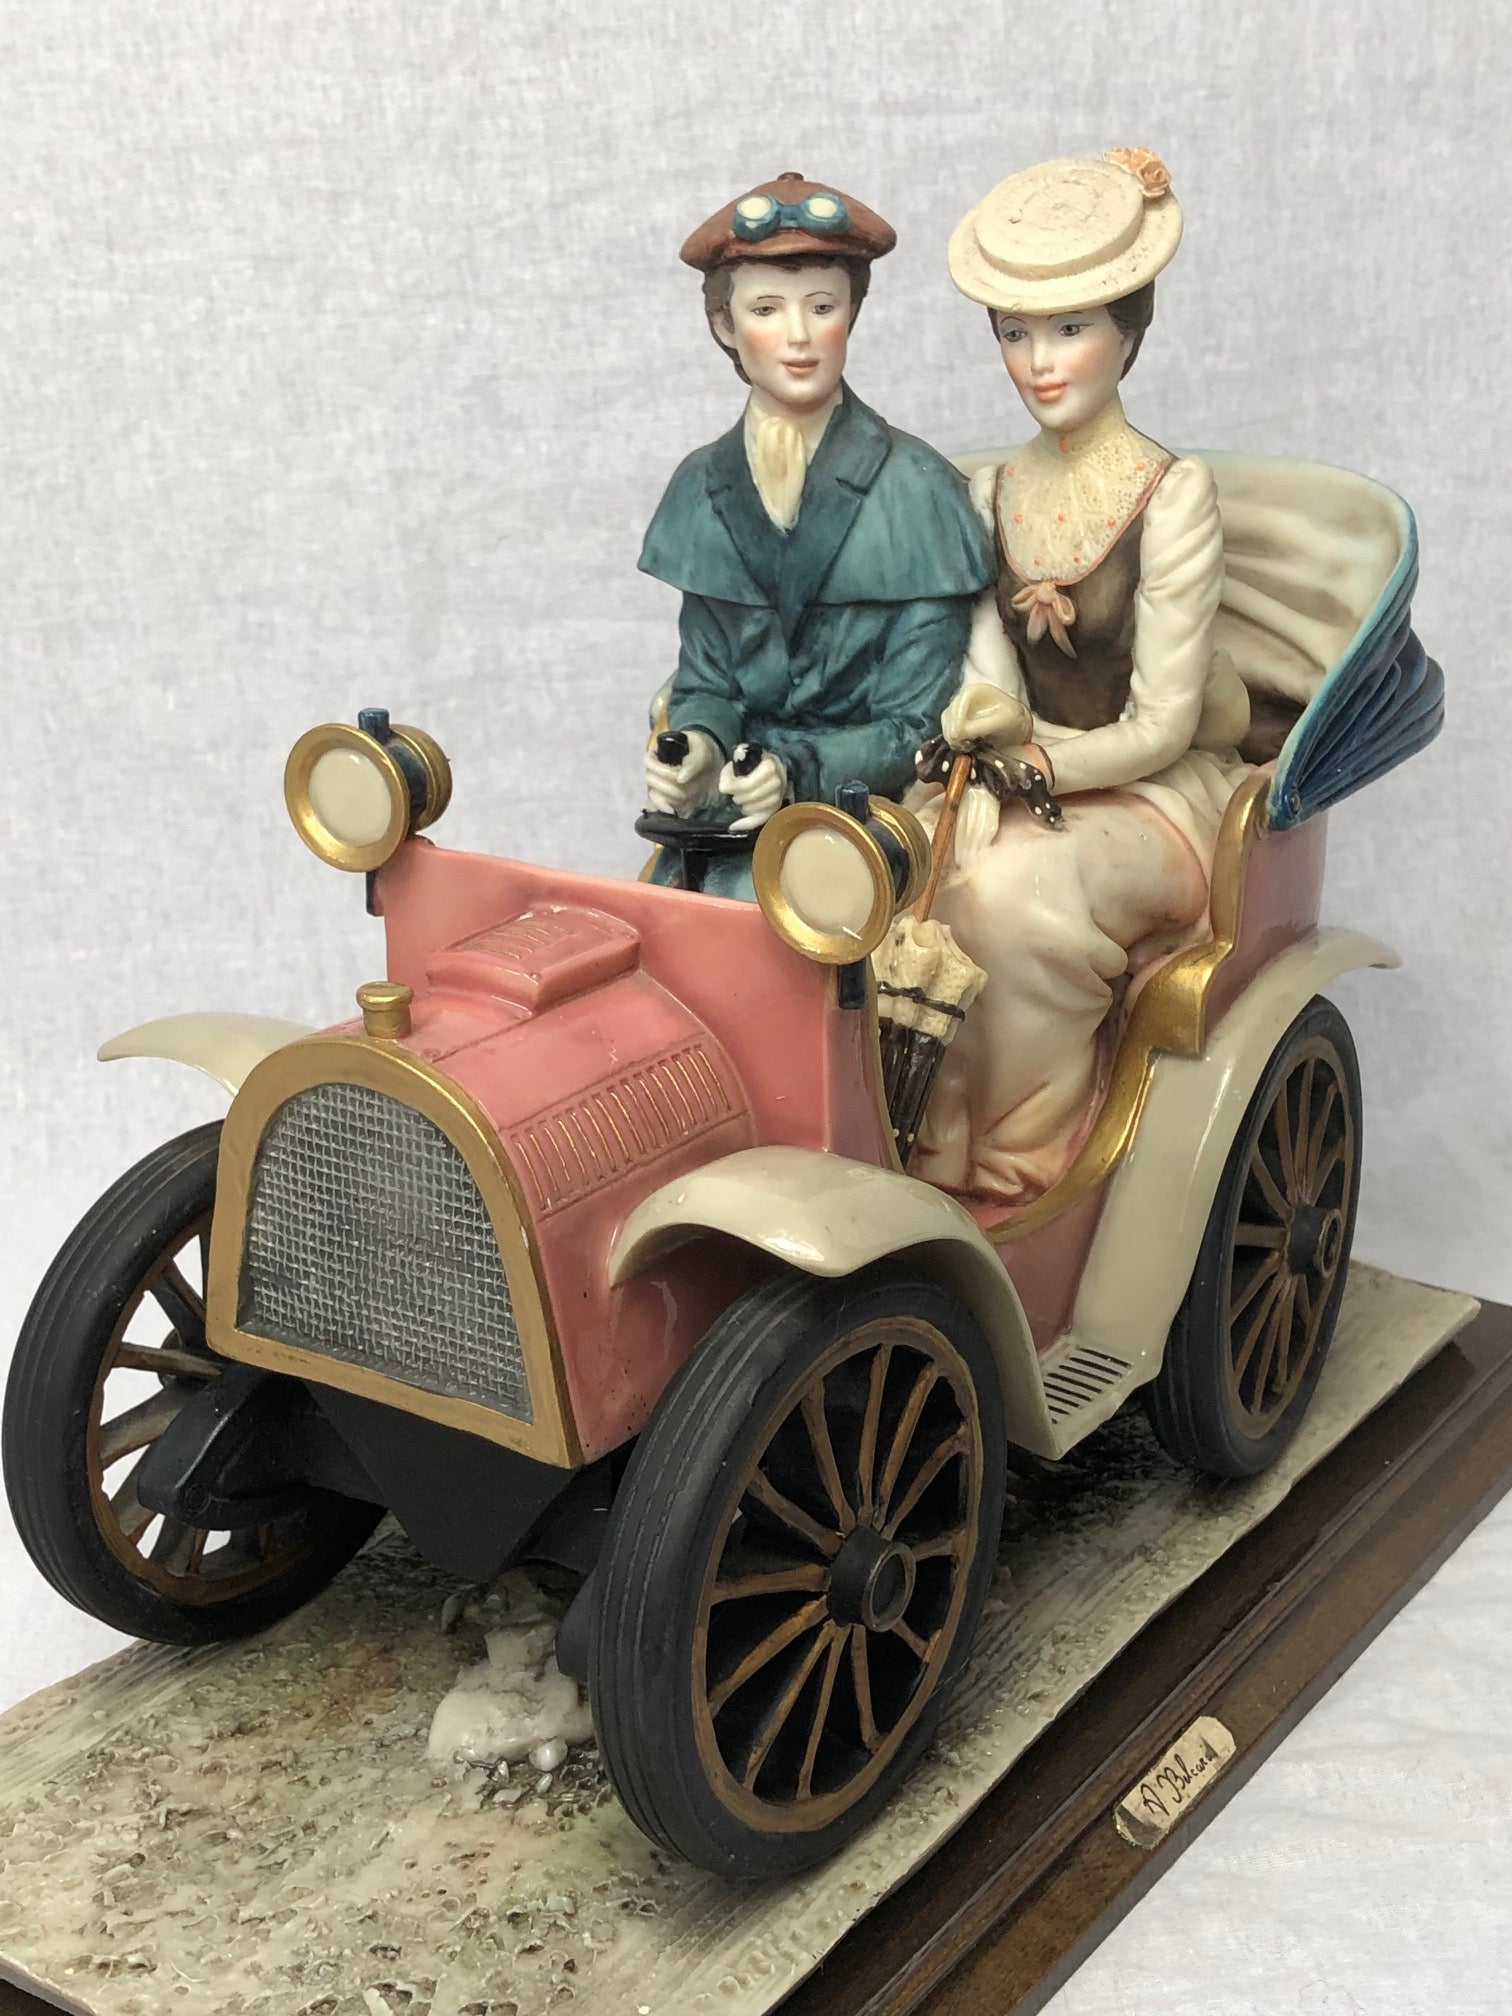 1 Porcelain Lady & Gentleman Touring In Car Ornament Sculpture Signed A Belcari